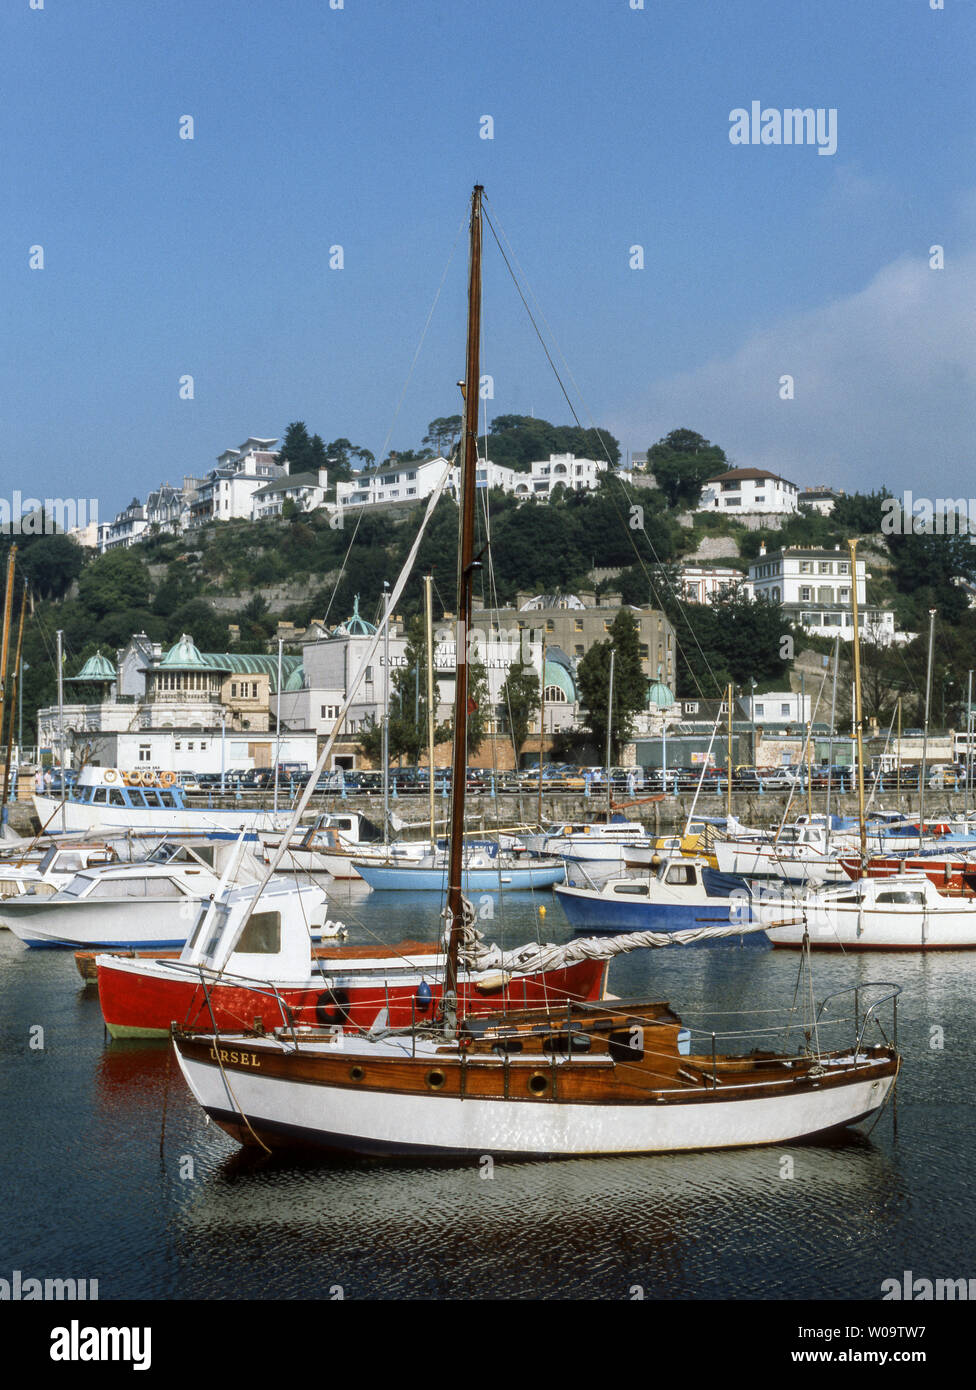 The English seaside resort of Torquay is in the center of the stretch of coastline known as 'The English Riviera' Devon. - Stock Image